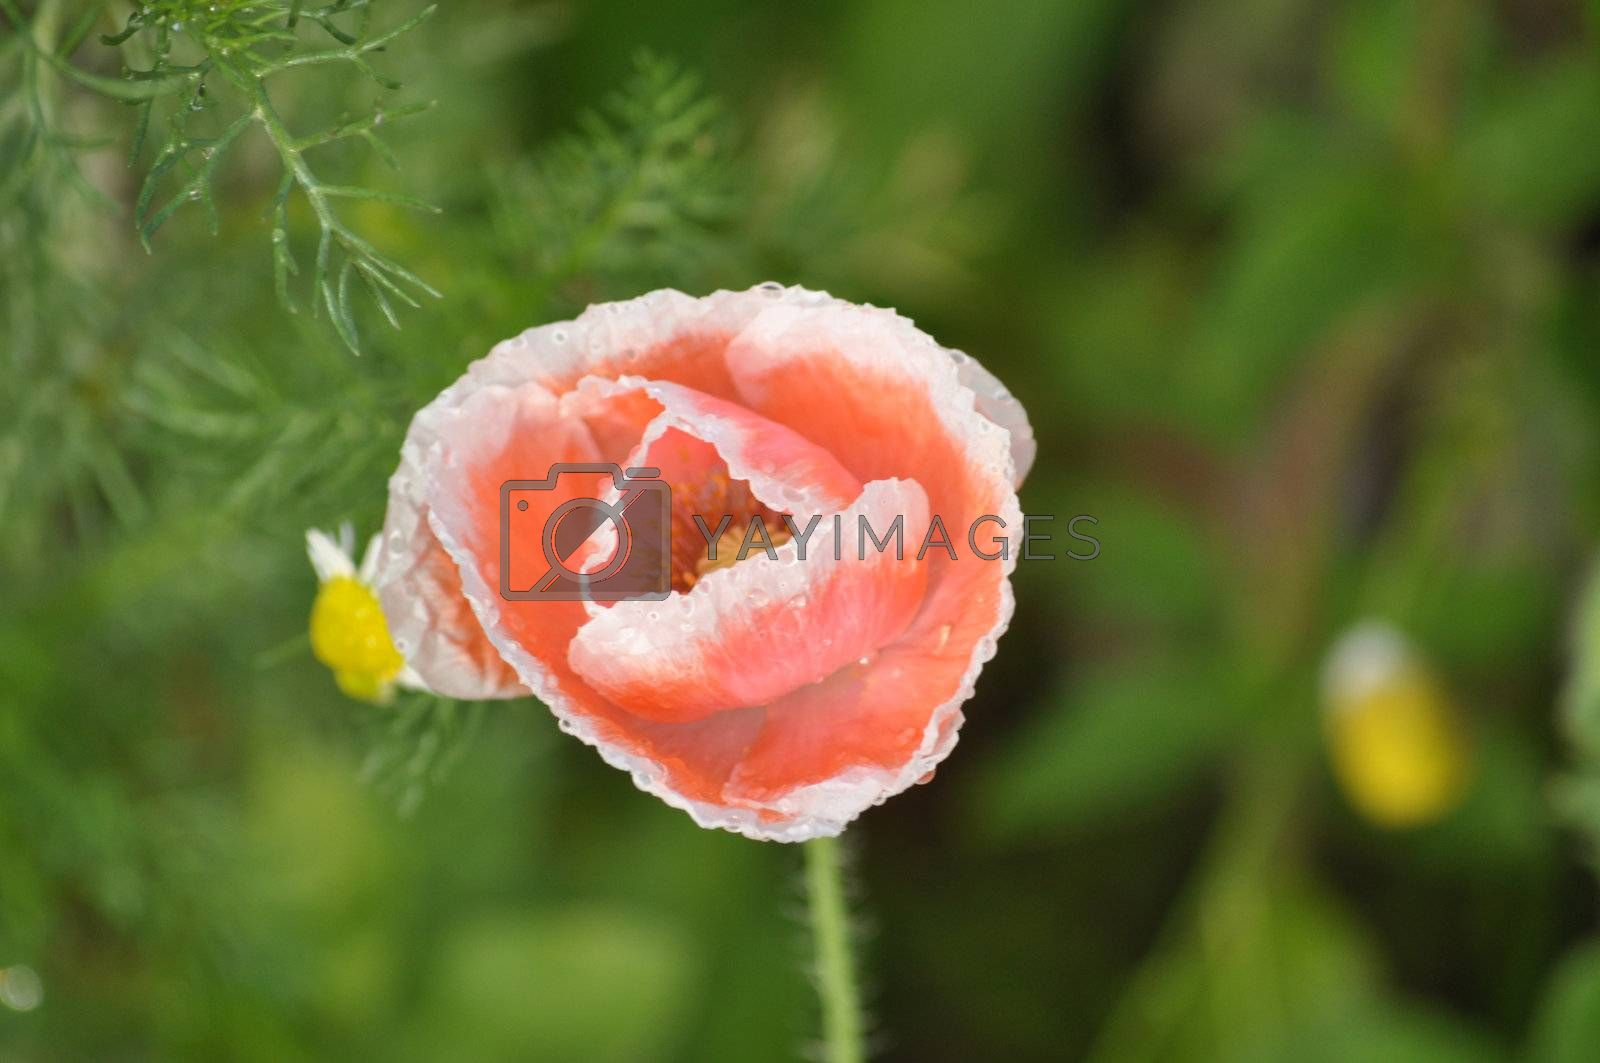 Poppies are sometimes used for symbolic reasons, such as in remembrance of soldiers who have died during wartime.